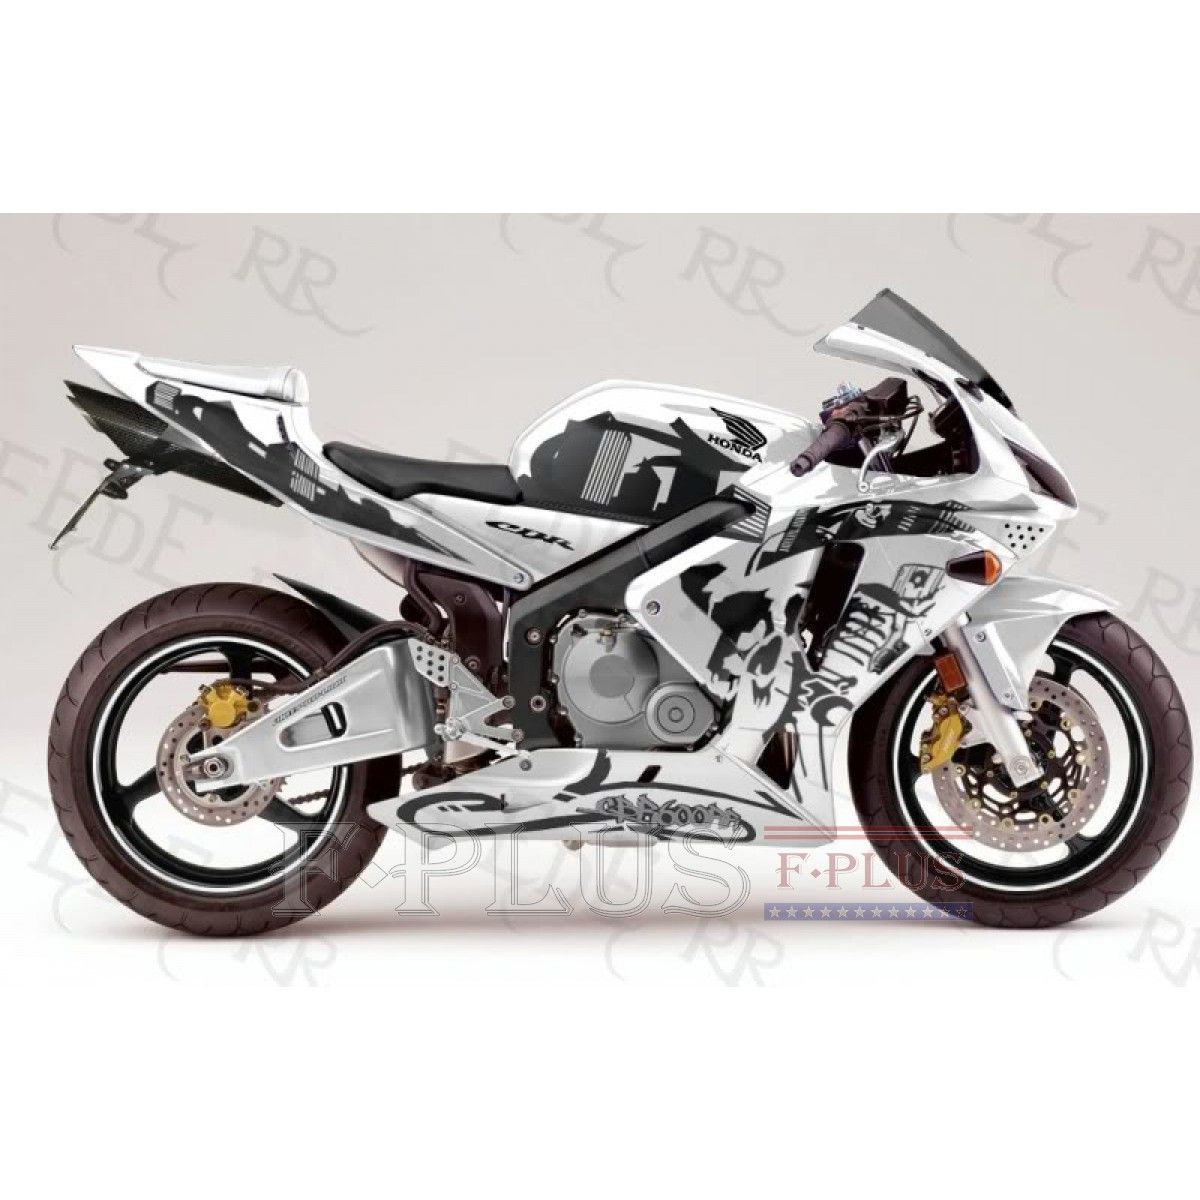 Aftermarket Fairings For Honda Cbr600rr 05 06 White Black Graffiti